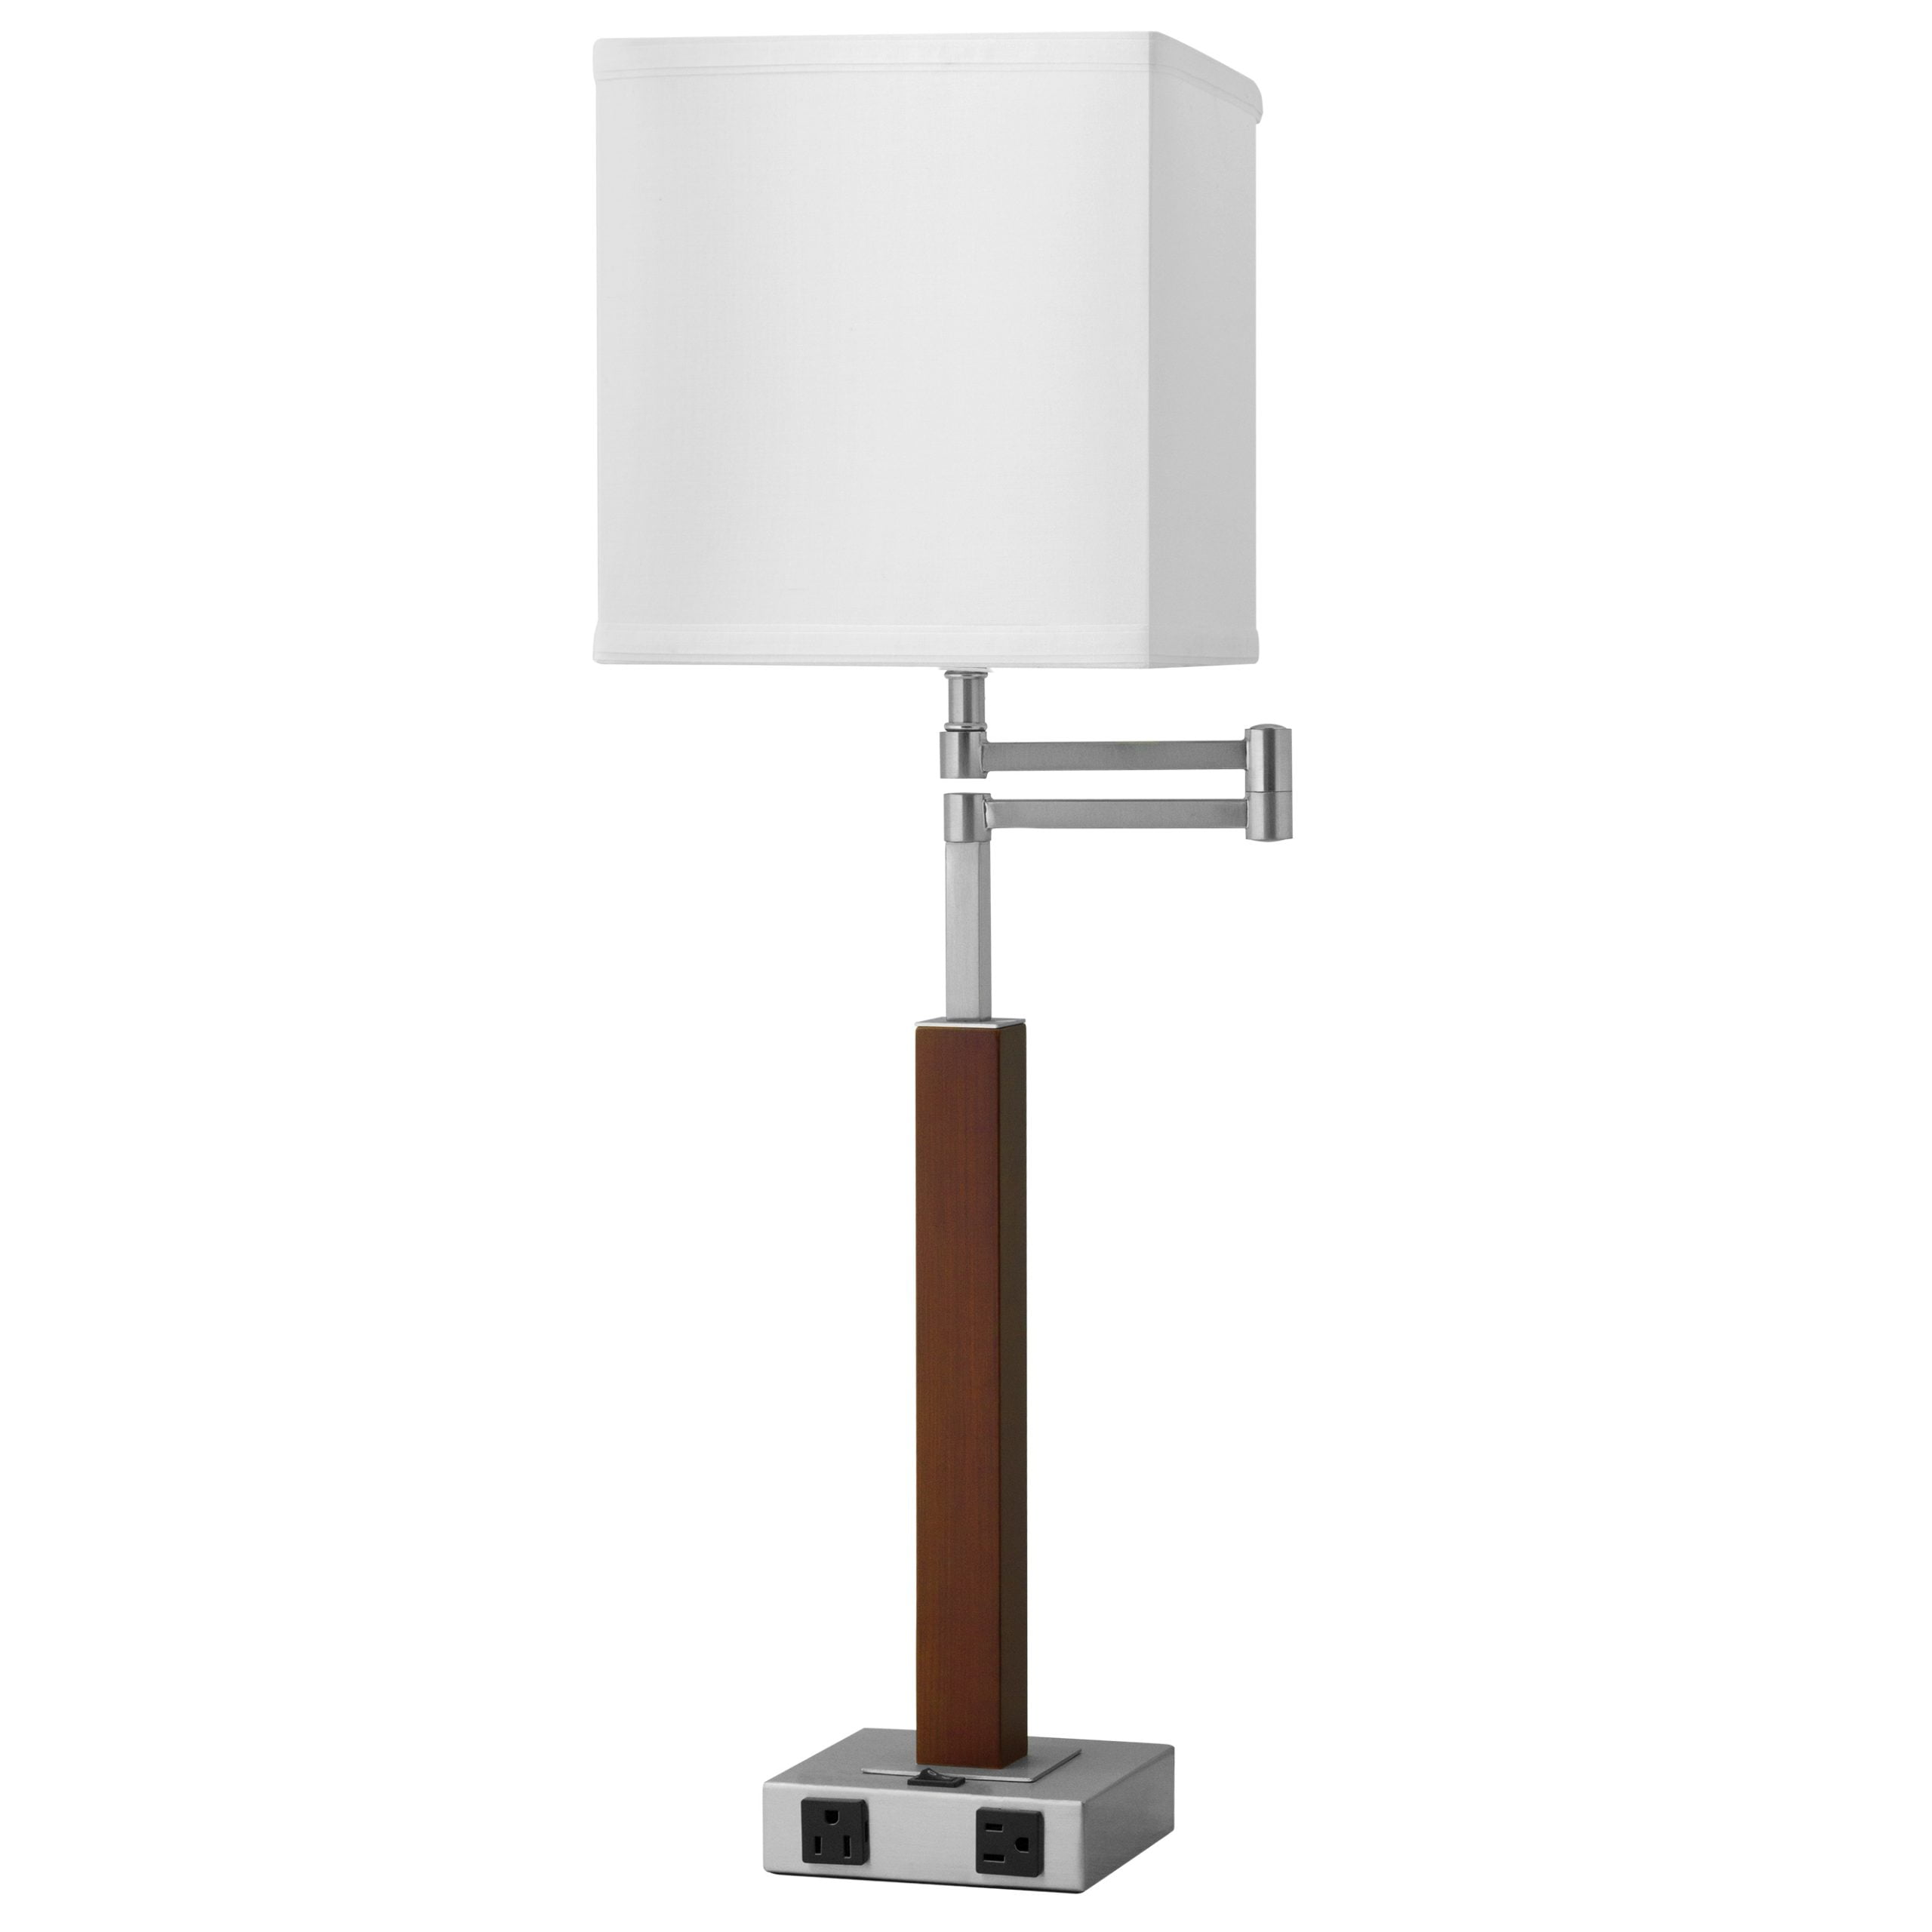 Calibri Desk Lamp with 2 Outlets